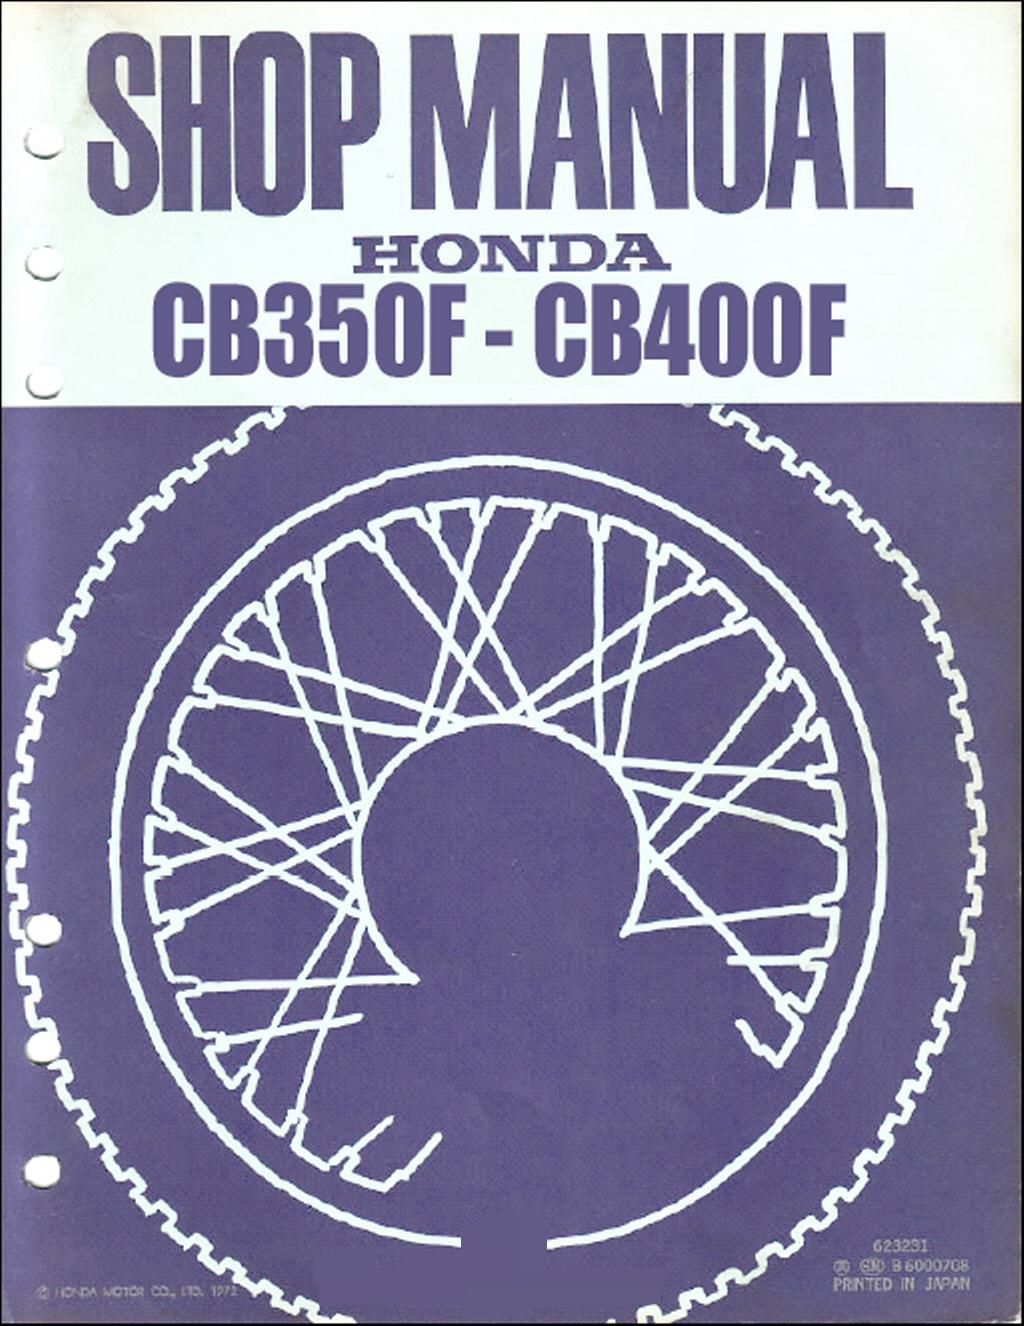 Workshop Manual for Honda CB400F (1972)